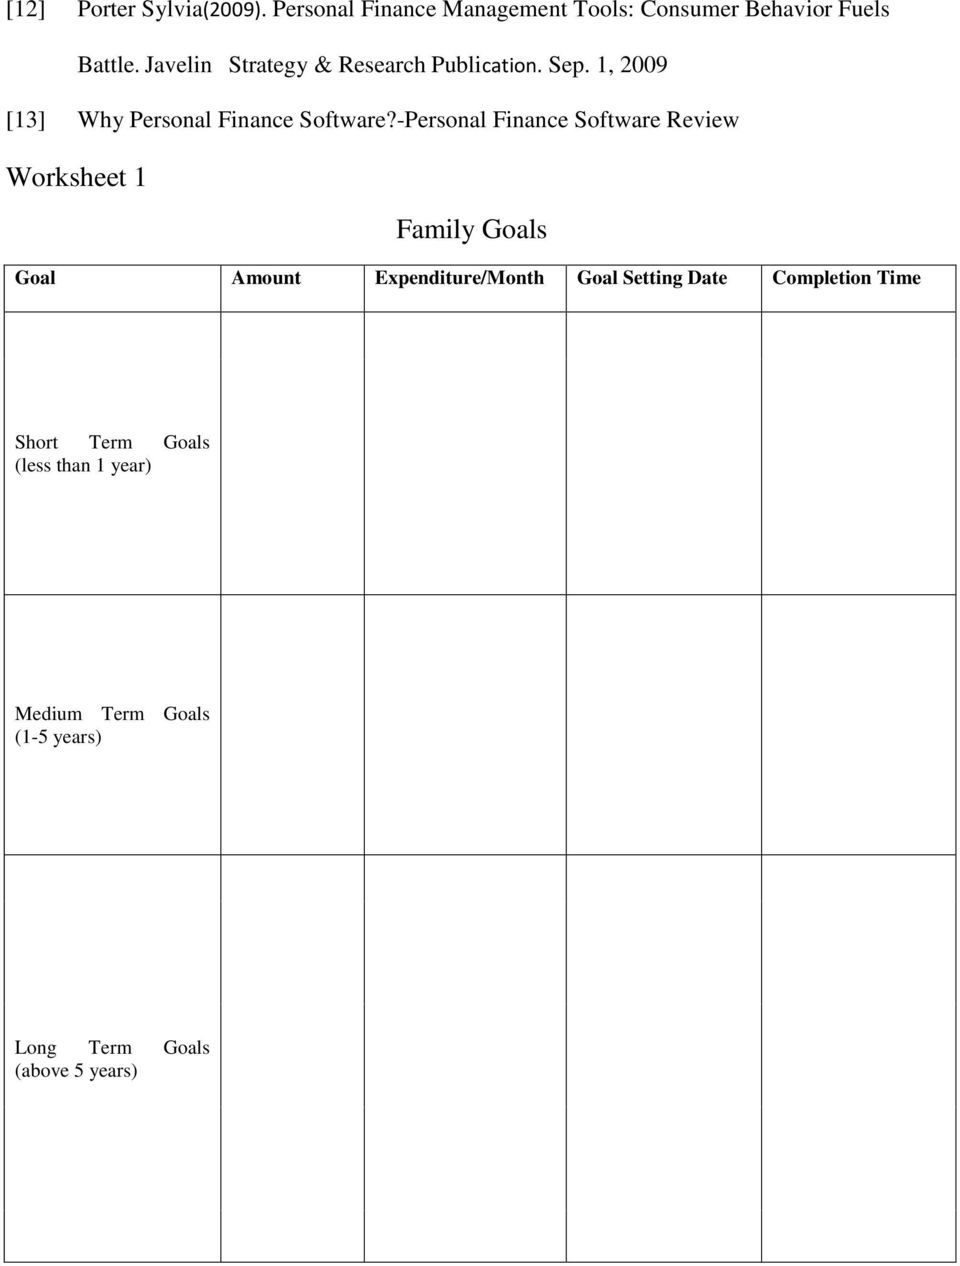 -Personal Finance Software Review Worksheet 1 Family Goals Goal Amount Expenditure/Month Goal